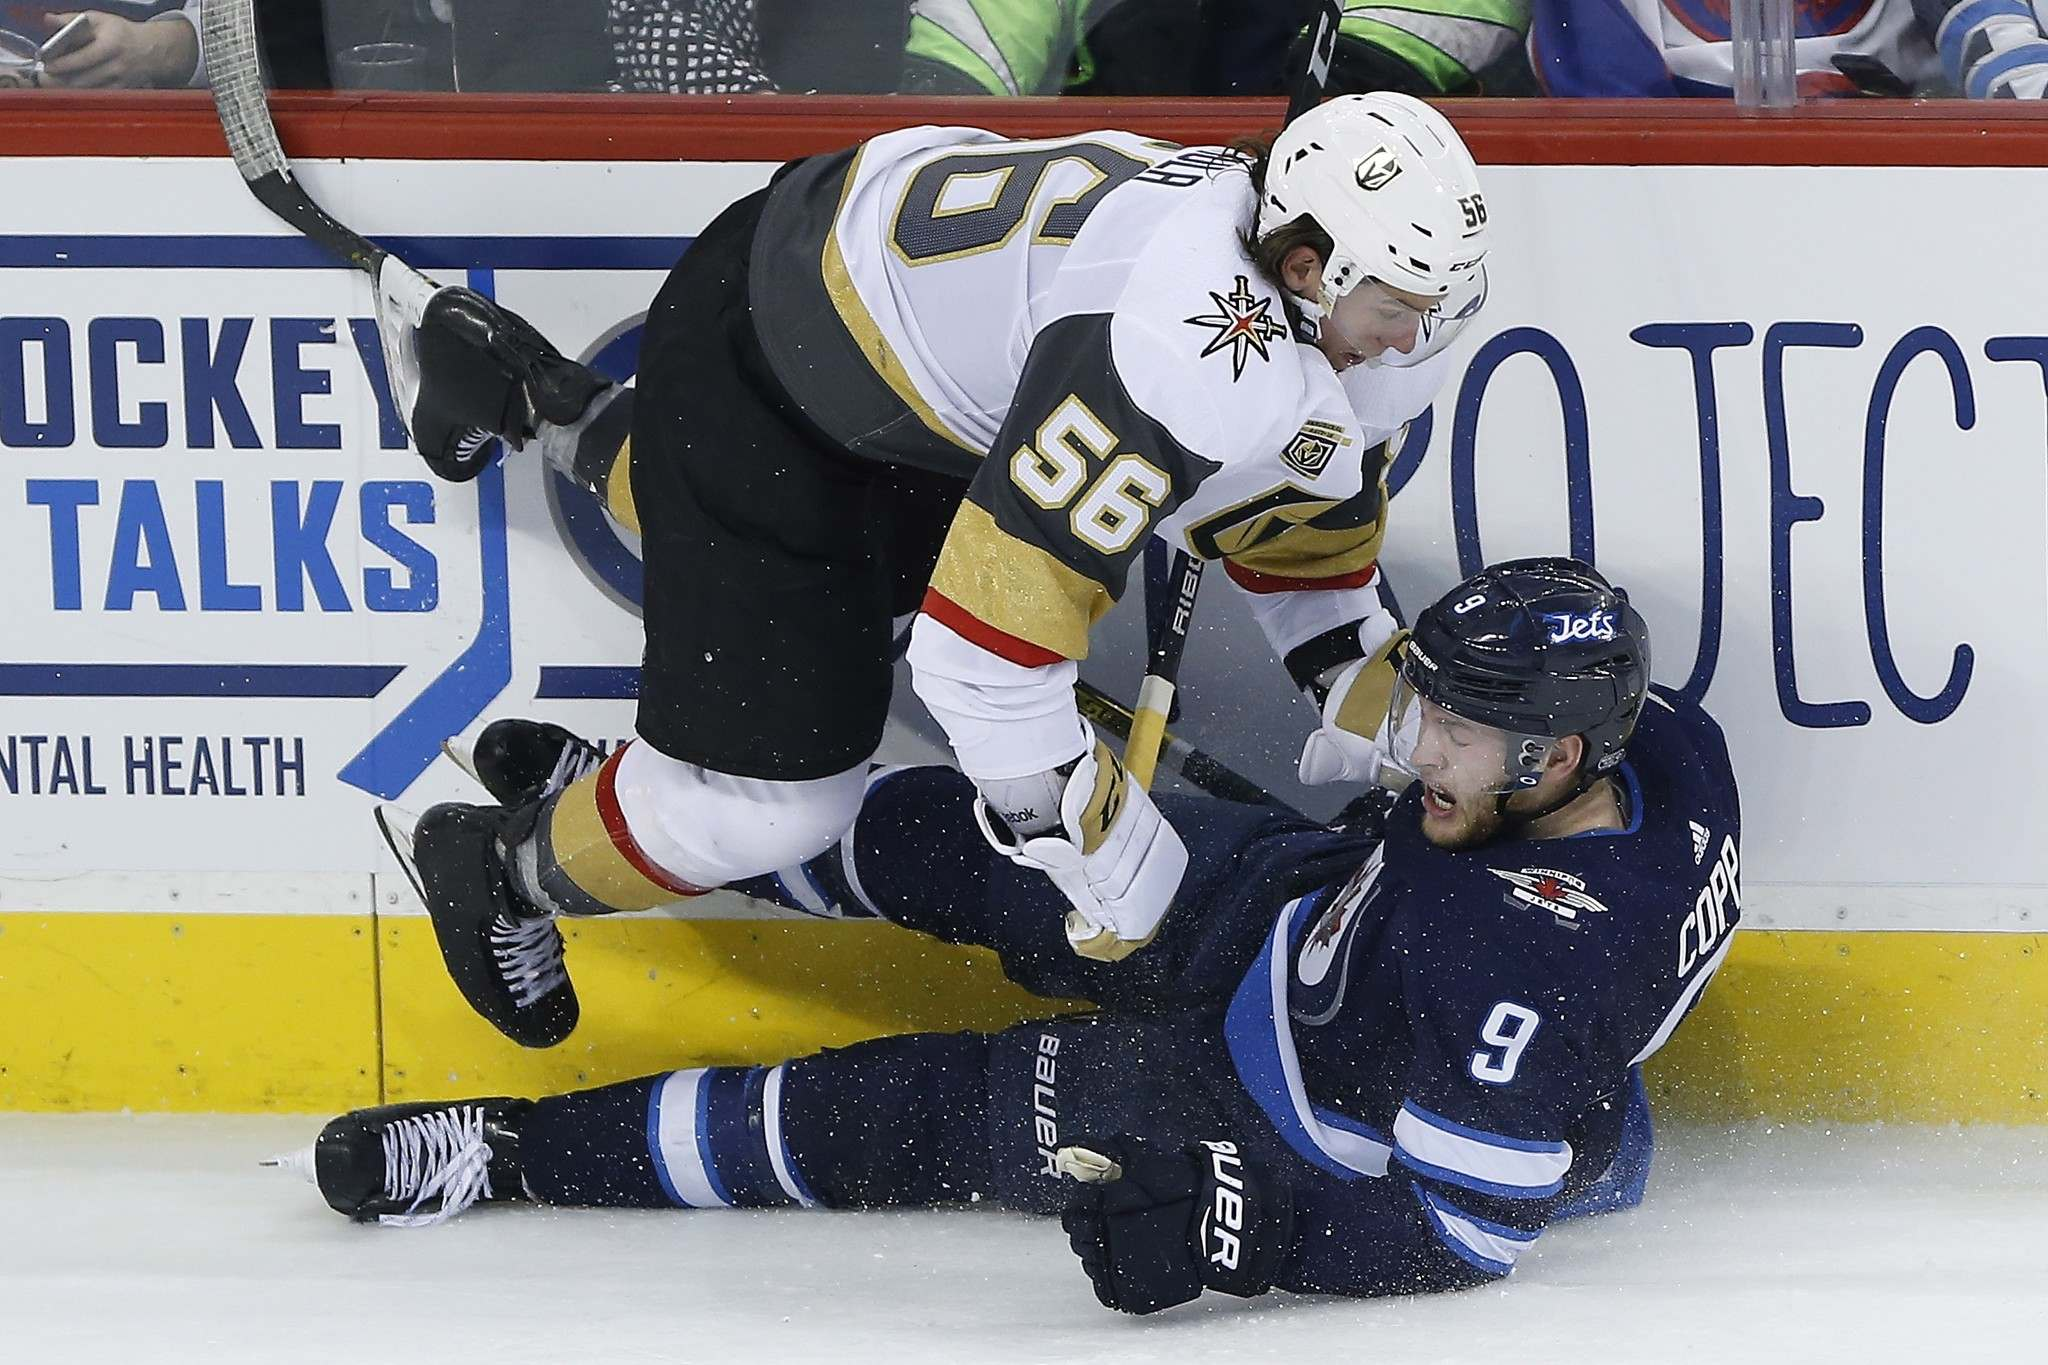 Vegas Golden Knights Erik Haula (56) and Winnipeg Jets&#39; Andrew Copp (9) collide during third period NHL action in Winnipeg on Thursday, February 1, 2018. THE CANADIAN PRESS/John Woods</p>